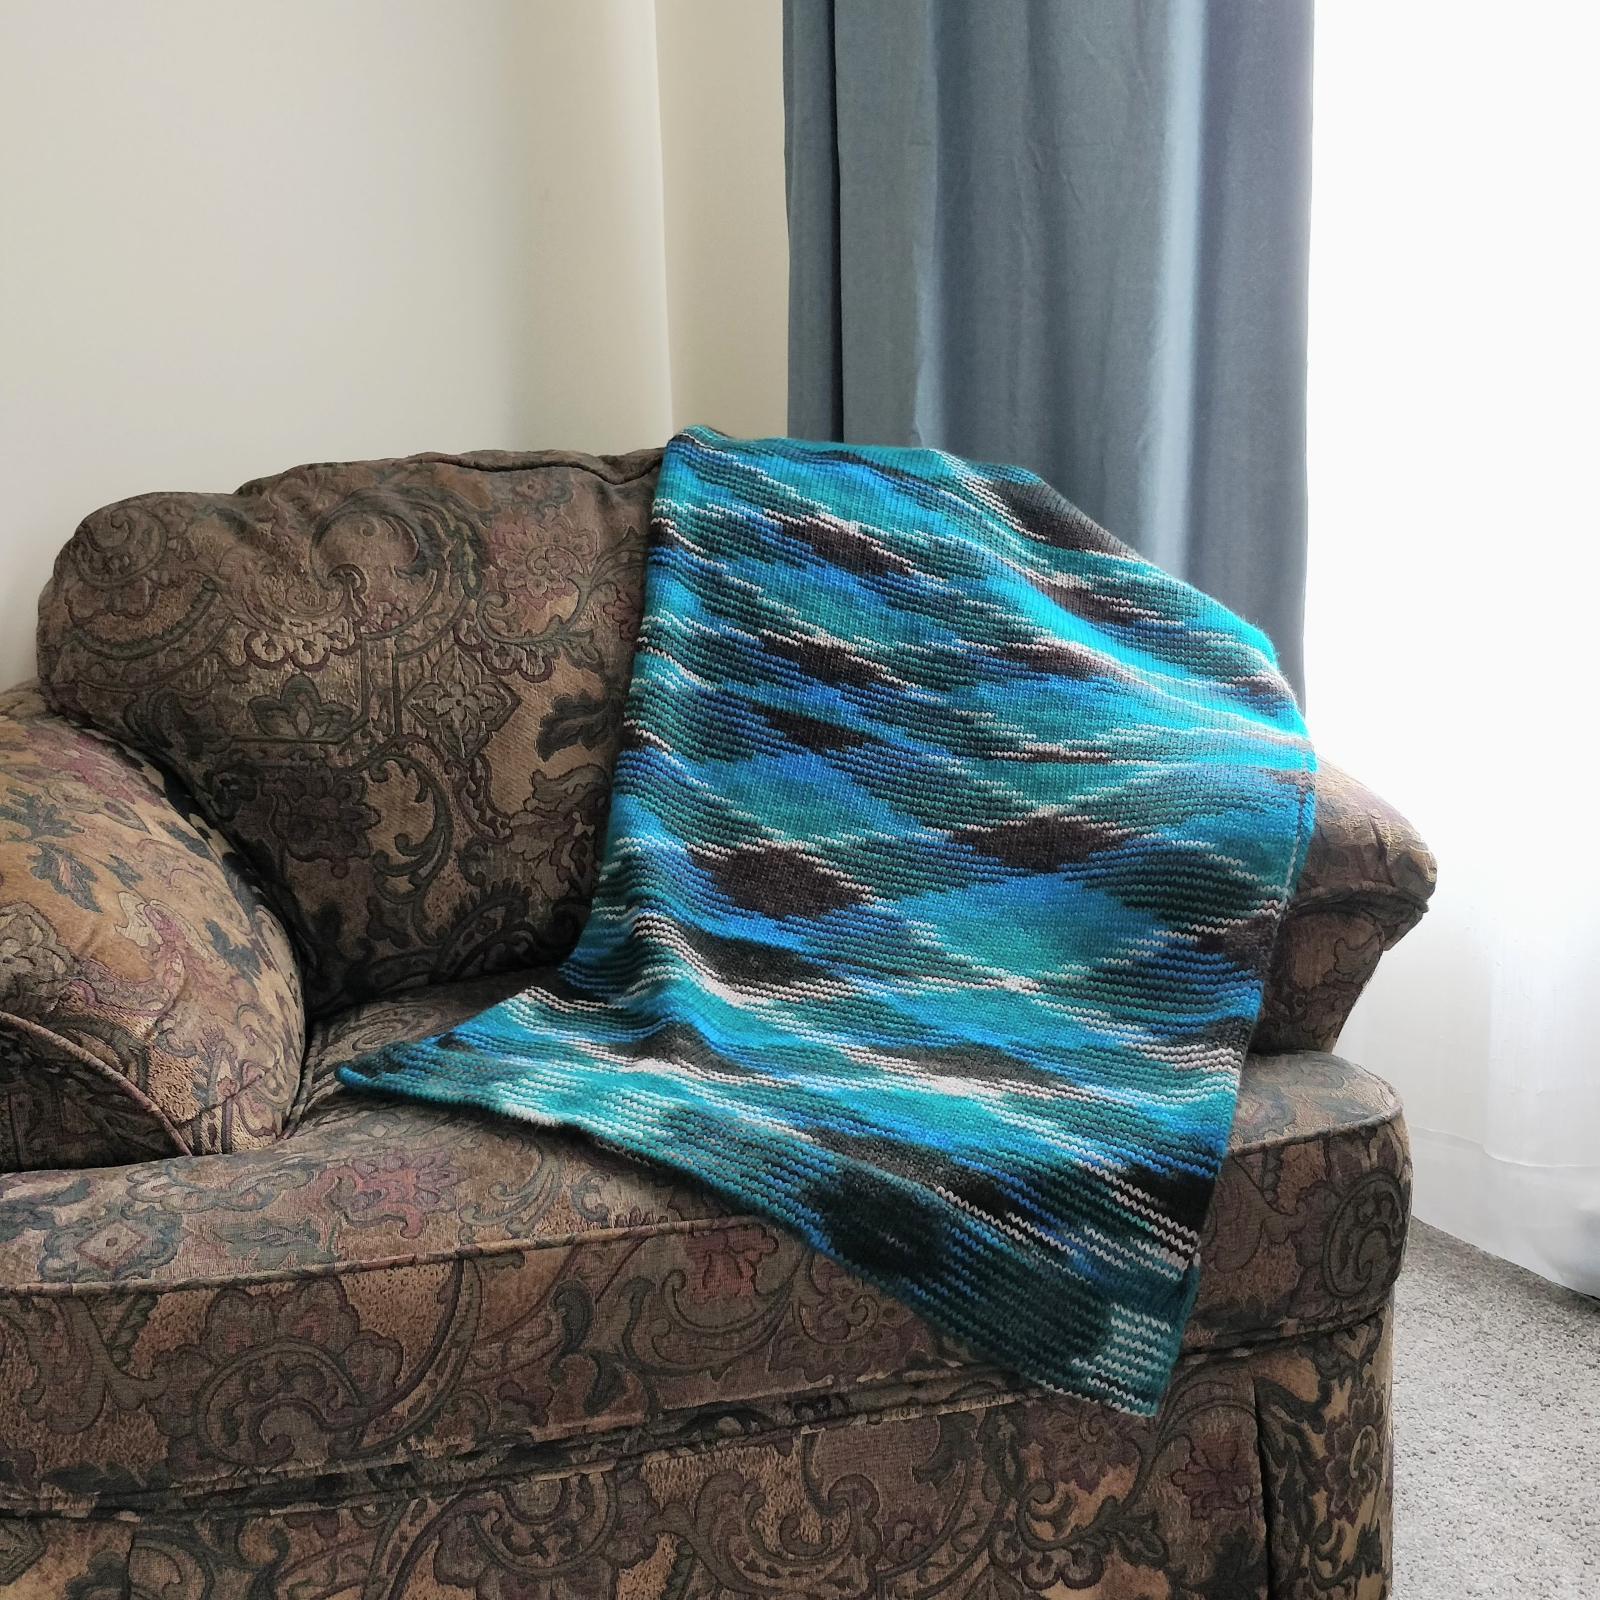 A teal and brown knit wrap draped artfully on an oversized, overstuffed chair.